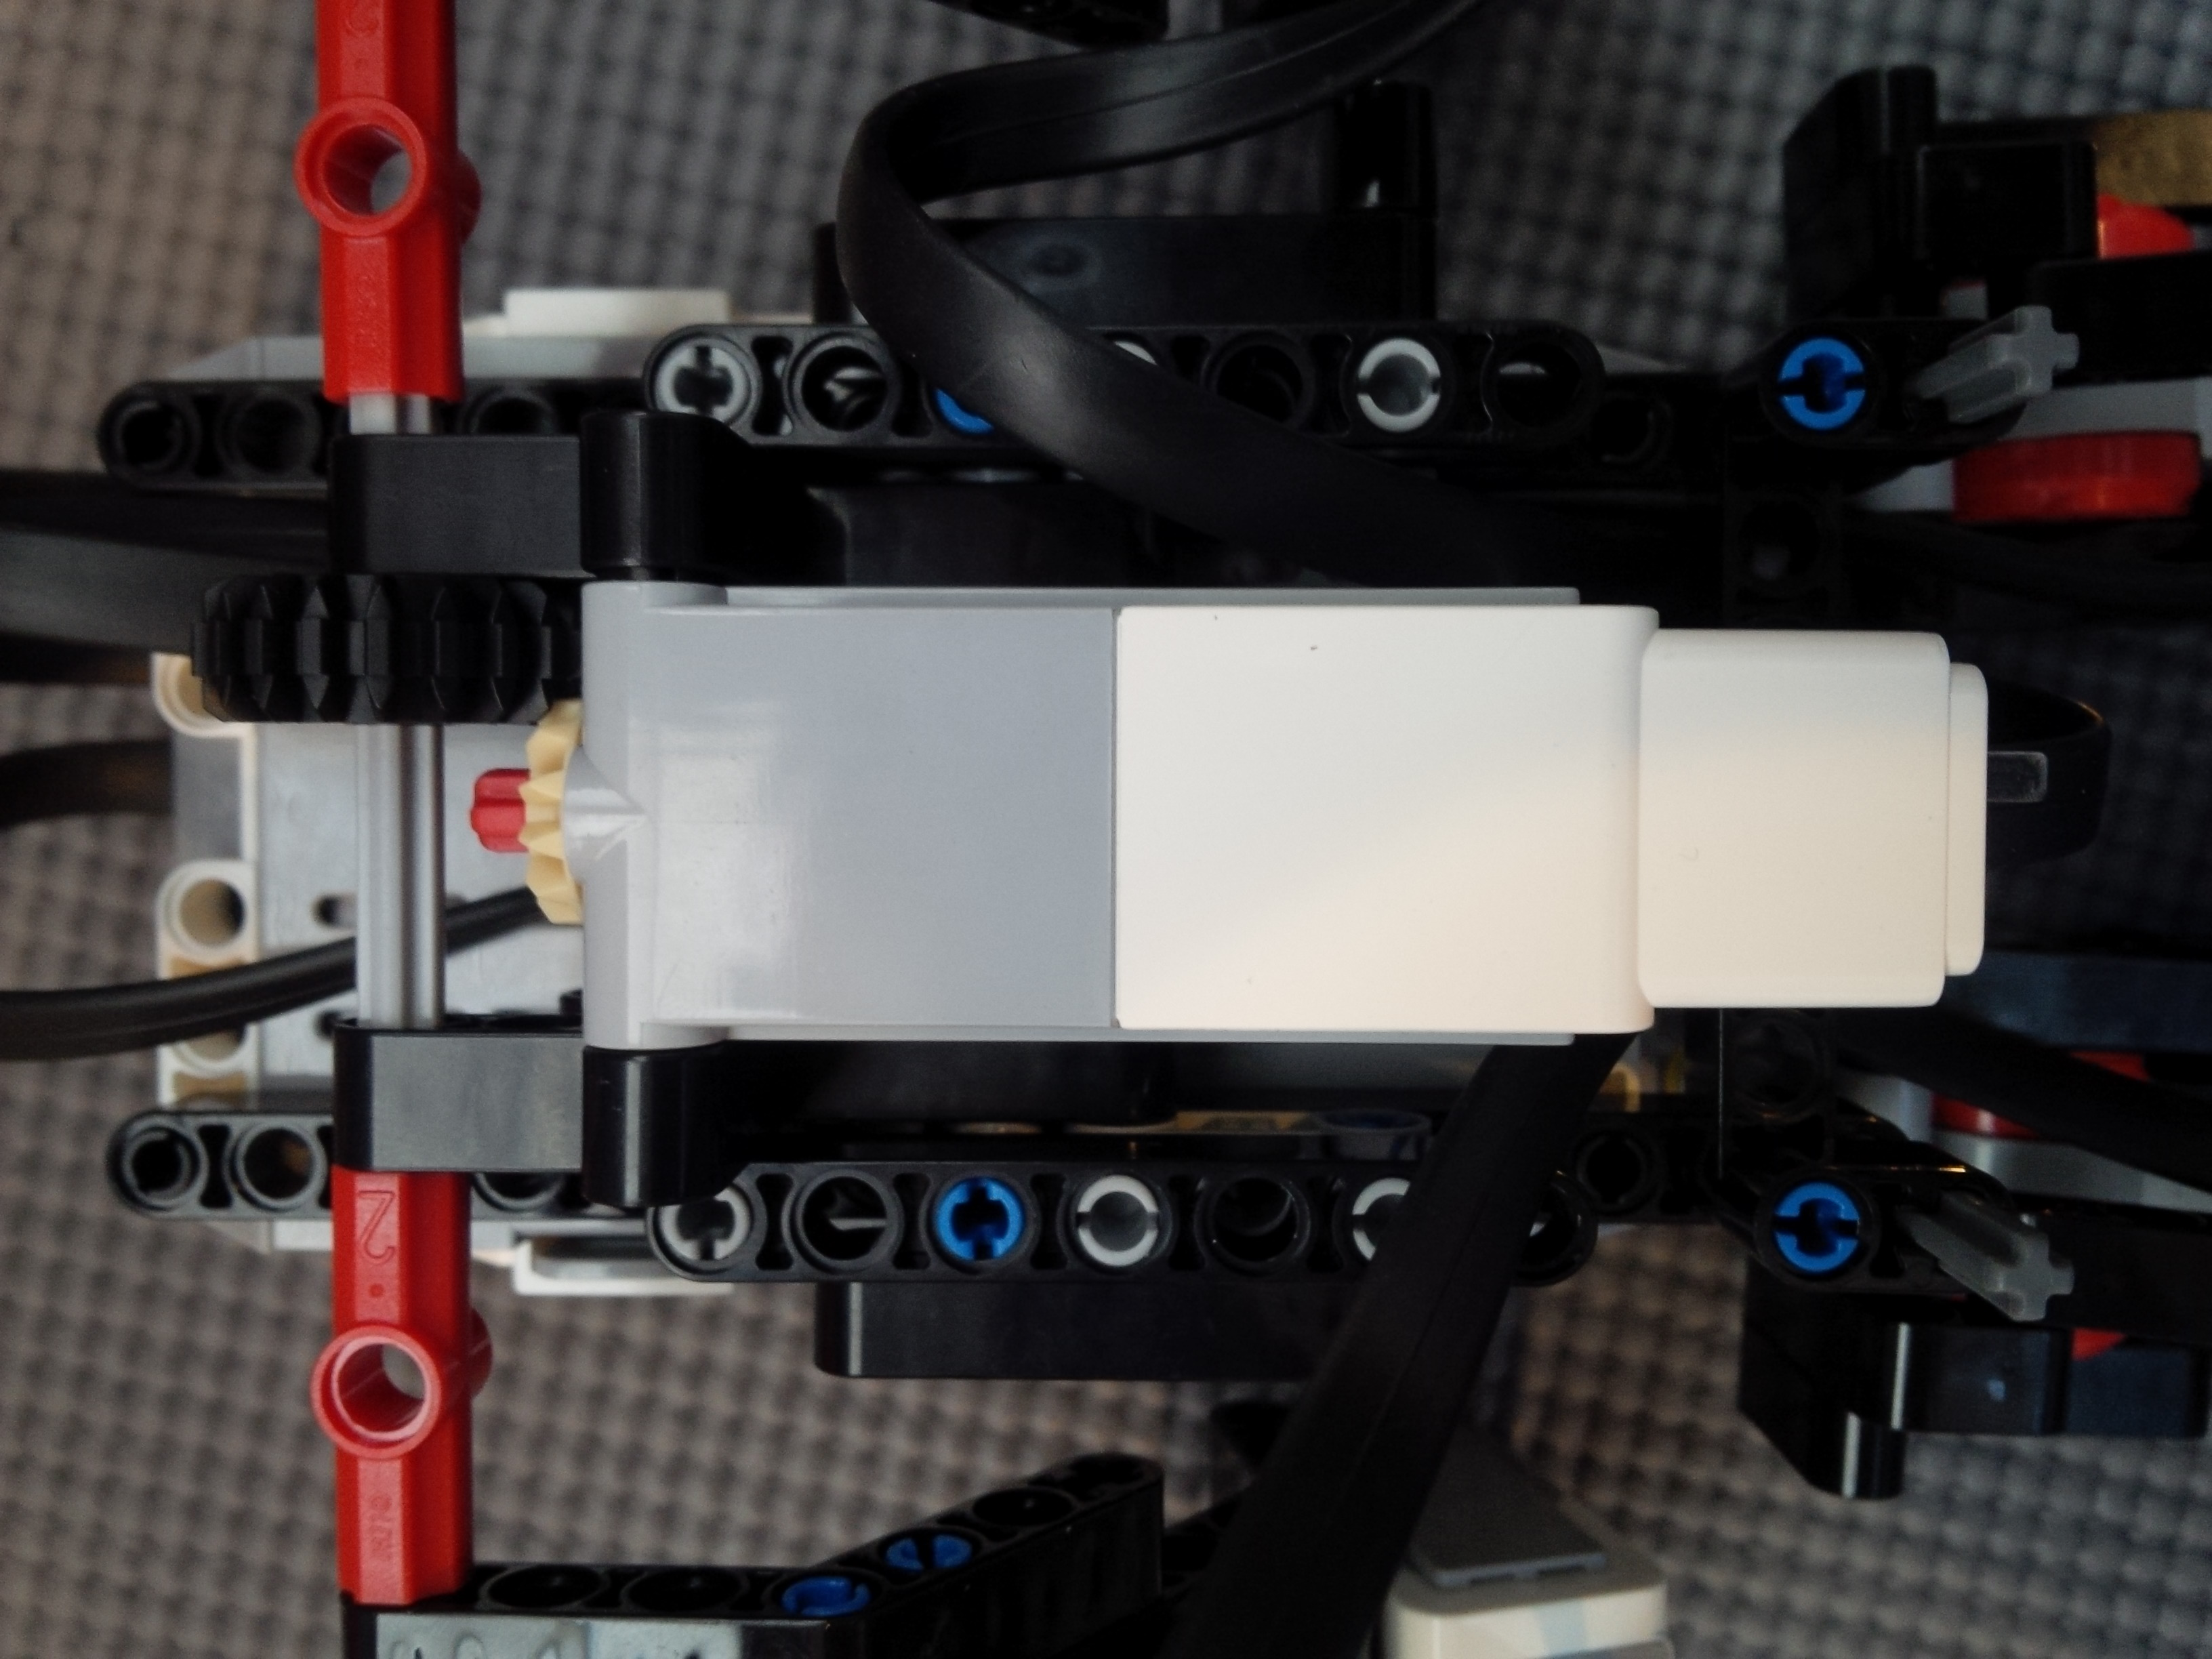 Back view of Lego Mindstorms Dancing Robot